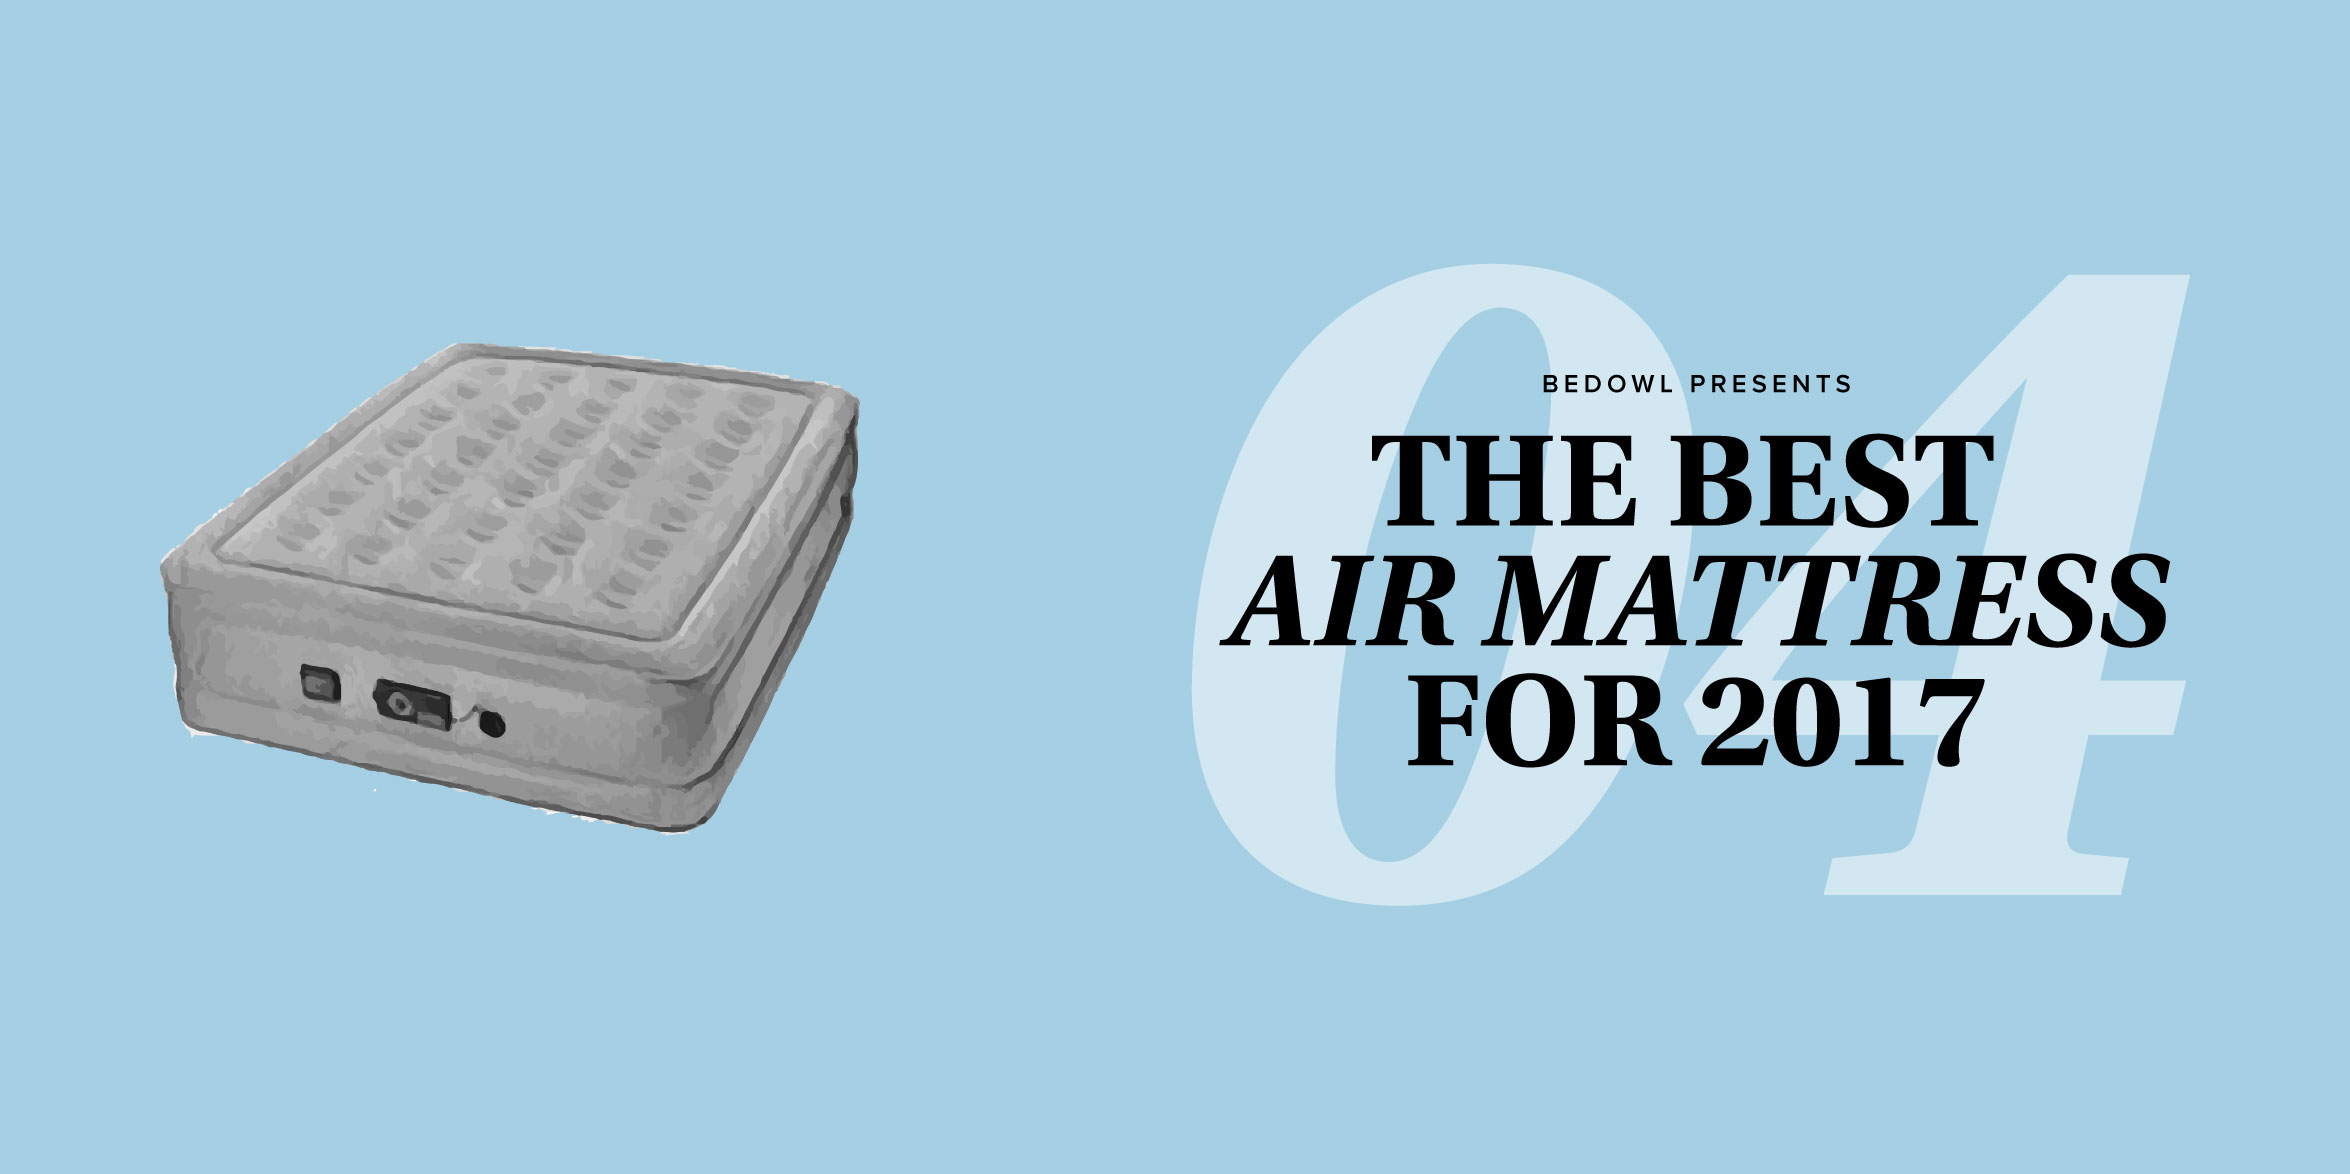 The Best Air Mattress for 2017 by Bedowl